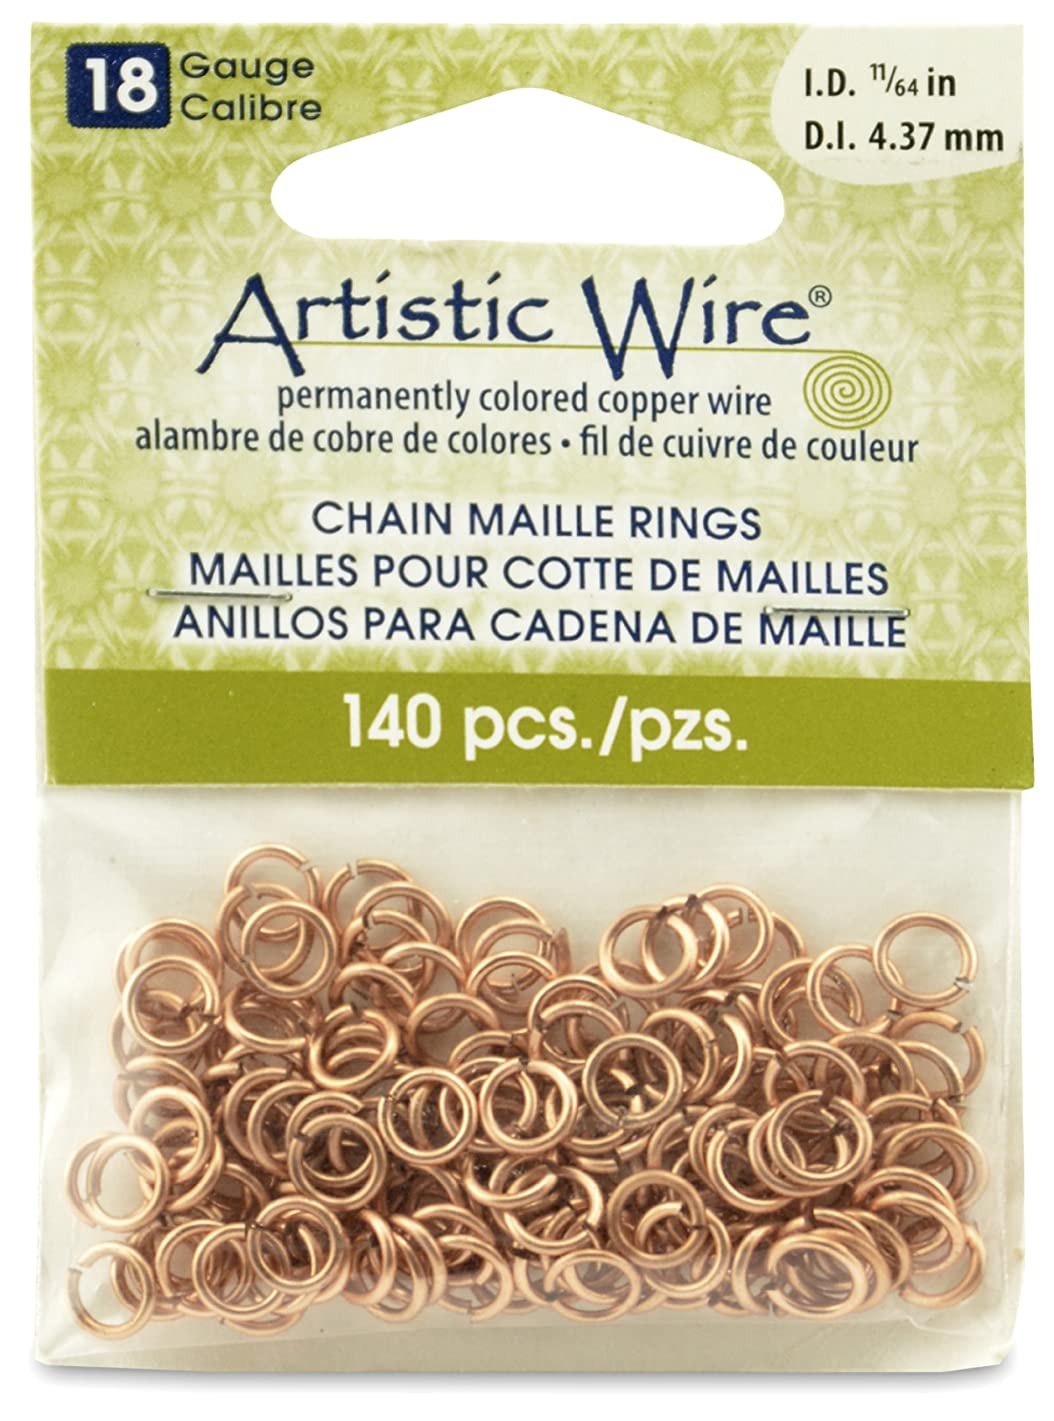 Artistic Wire 18-Gauge Natural Chain Maille Rings, 11/64-Inch Diameter, 140-Pieces